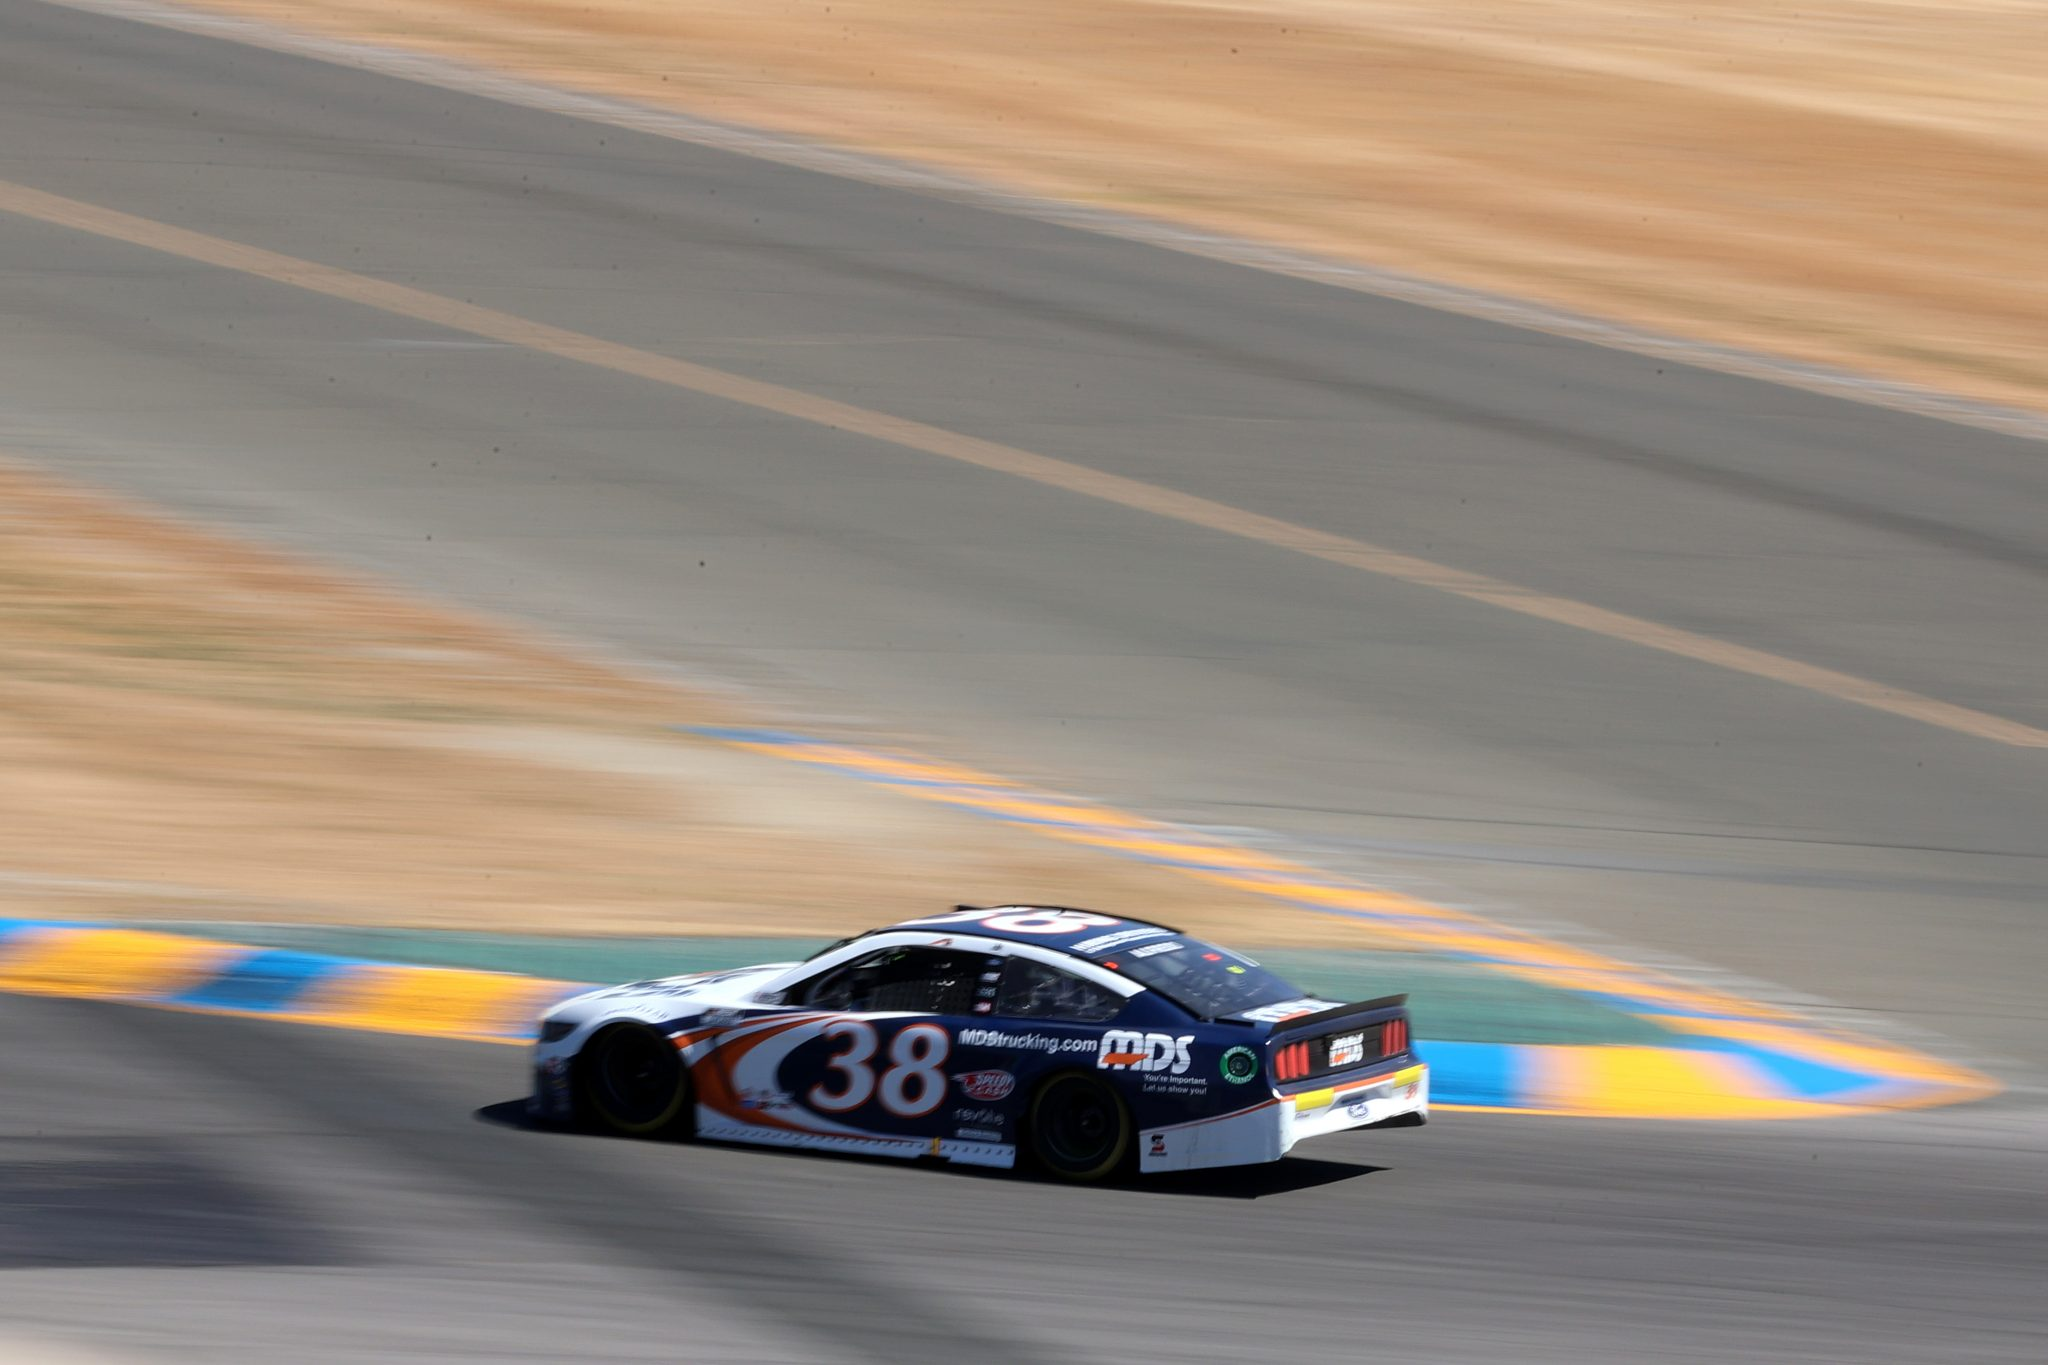 SONOMA, CALIFORNIA - JUNE 06: Anthony Alfredo, driver of the #38 MDS Ford, drives during the NASCAR Cup Series Toyota/Save Mart 350 at Sonoma Raceway on June 06, 2021 in Sonoma, California. (Photo by Carmen Mandato/Getty Images) | Getty Images